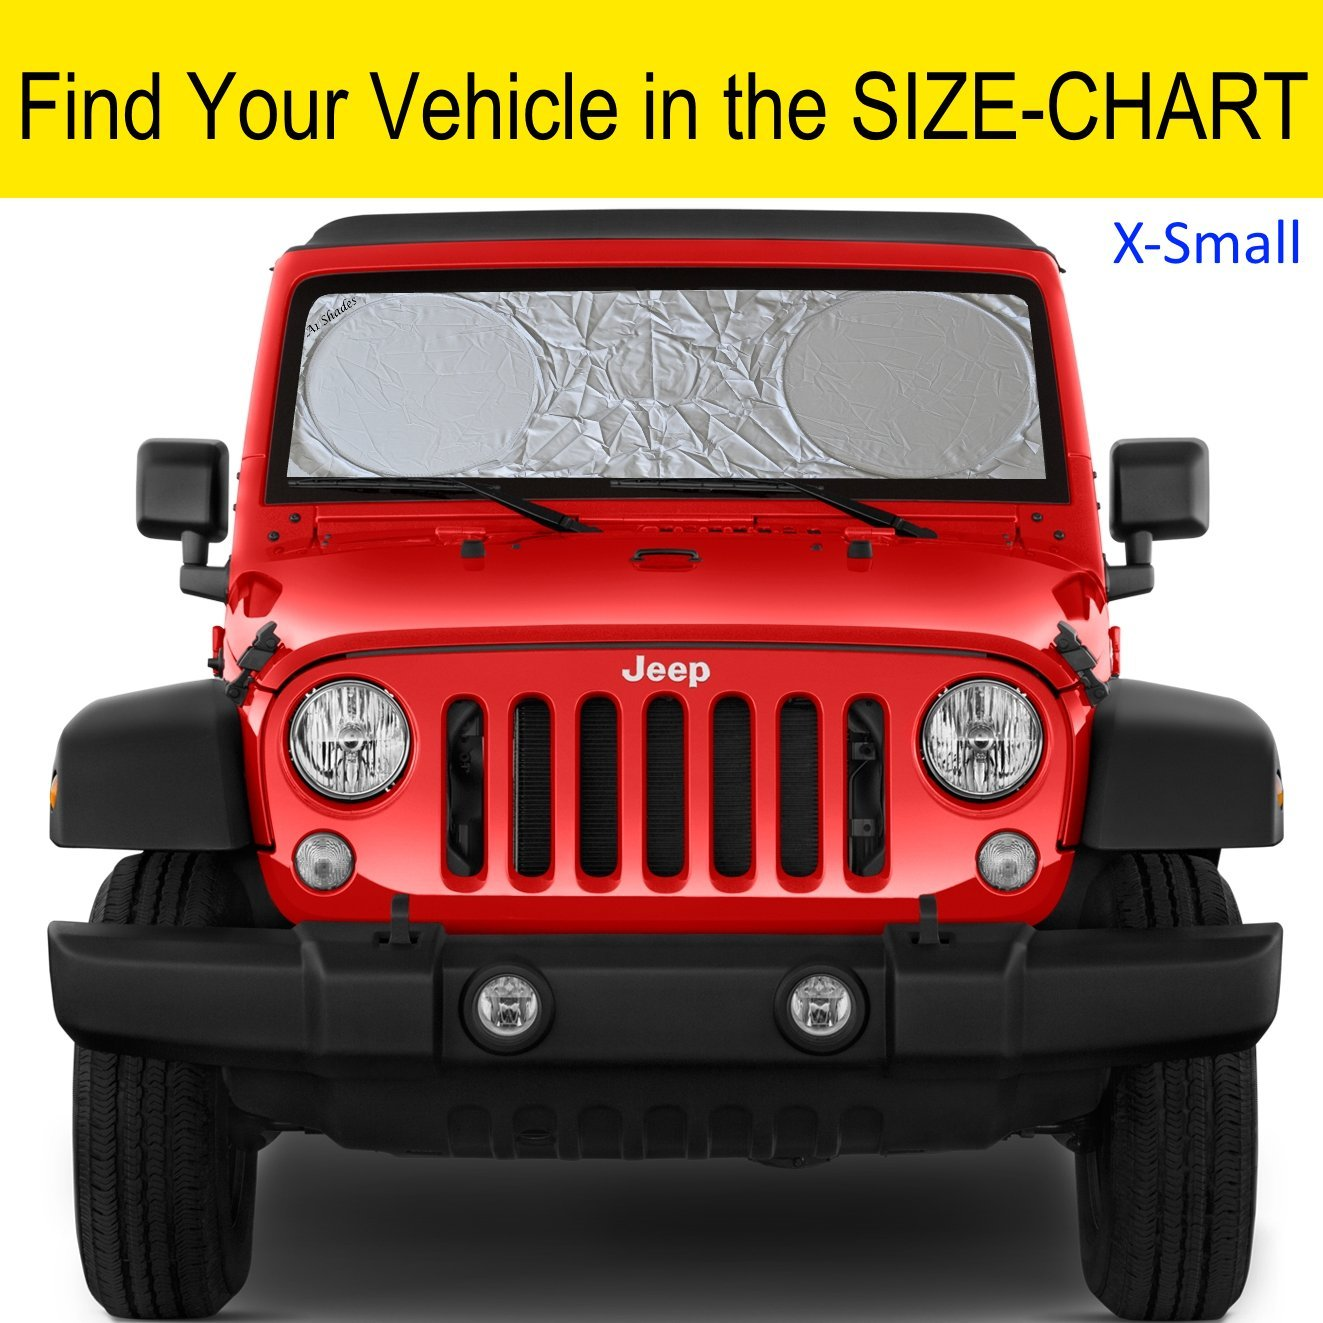 Windshield Sun Shade SUV Car Hassle-Free Size Chart with Your Vehicle Universal Quality-210T Keep Vehicle Accessories Cool UV Sun and Heat Reflector Sunshade (Large) A1 Shades